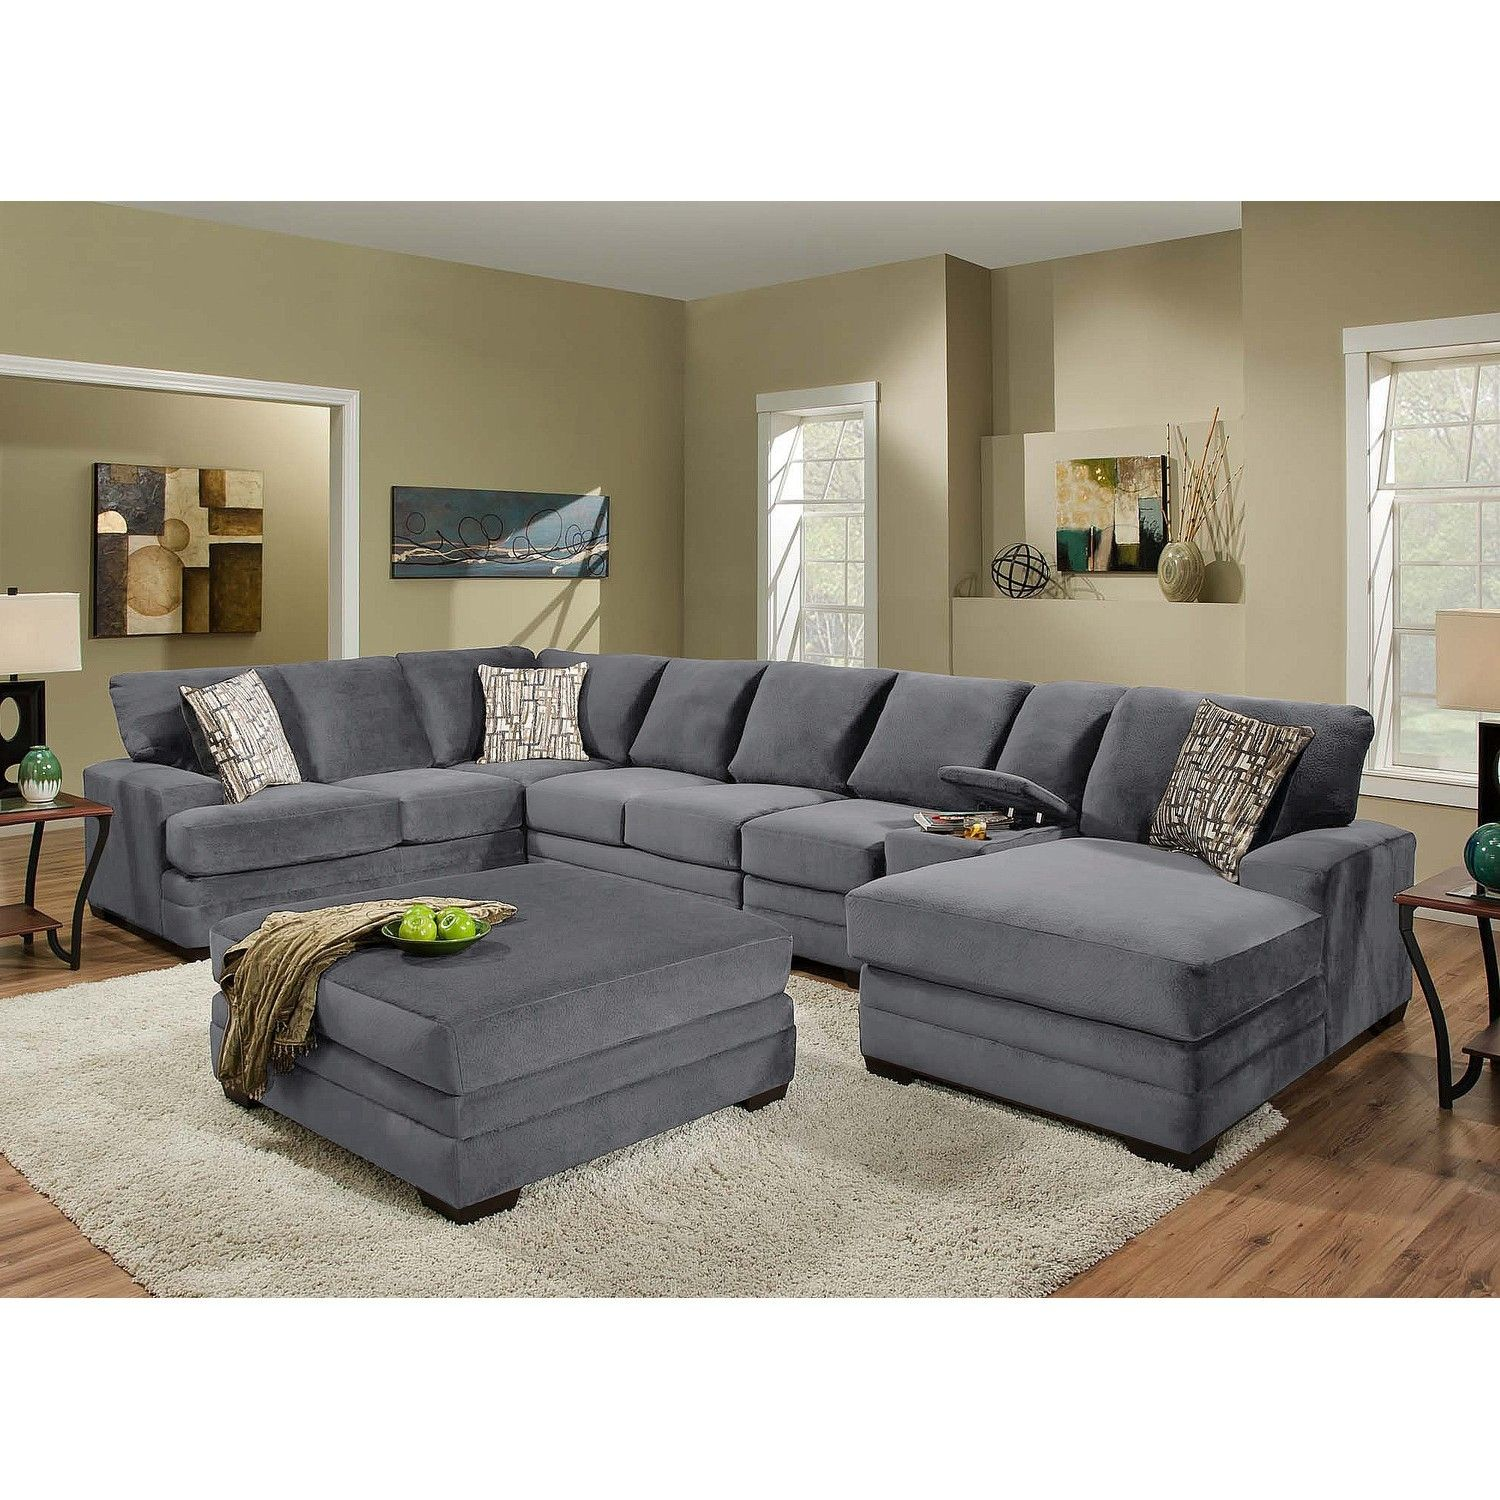 Charmant Most Durable Sectional Sofa